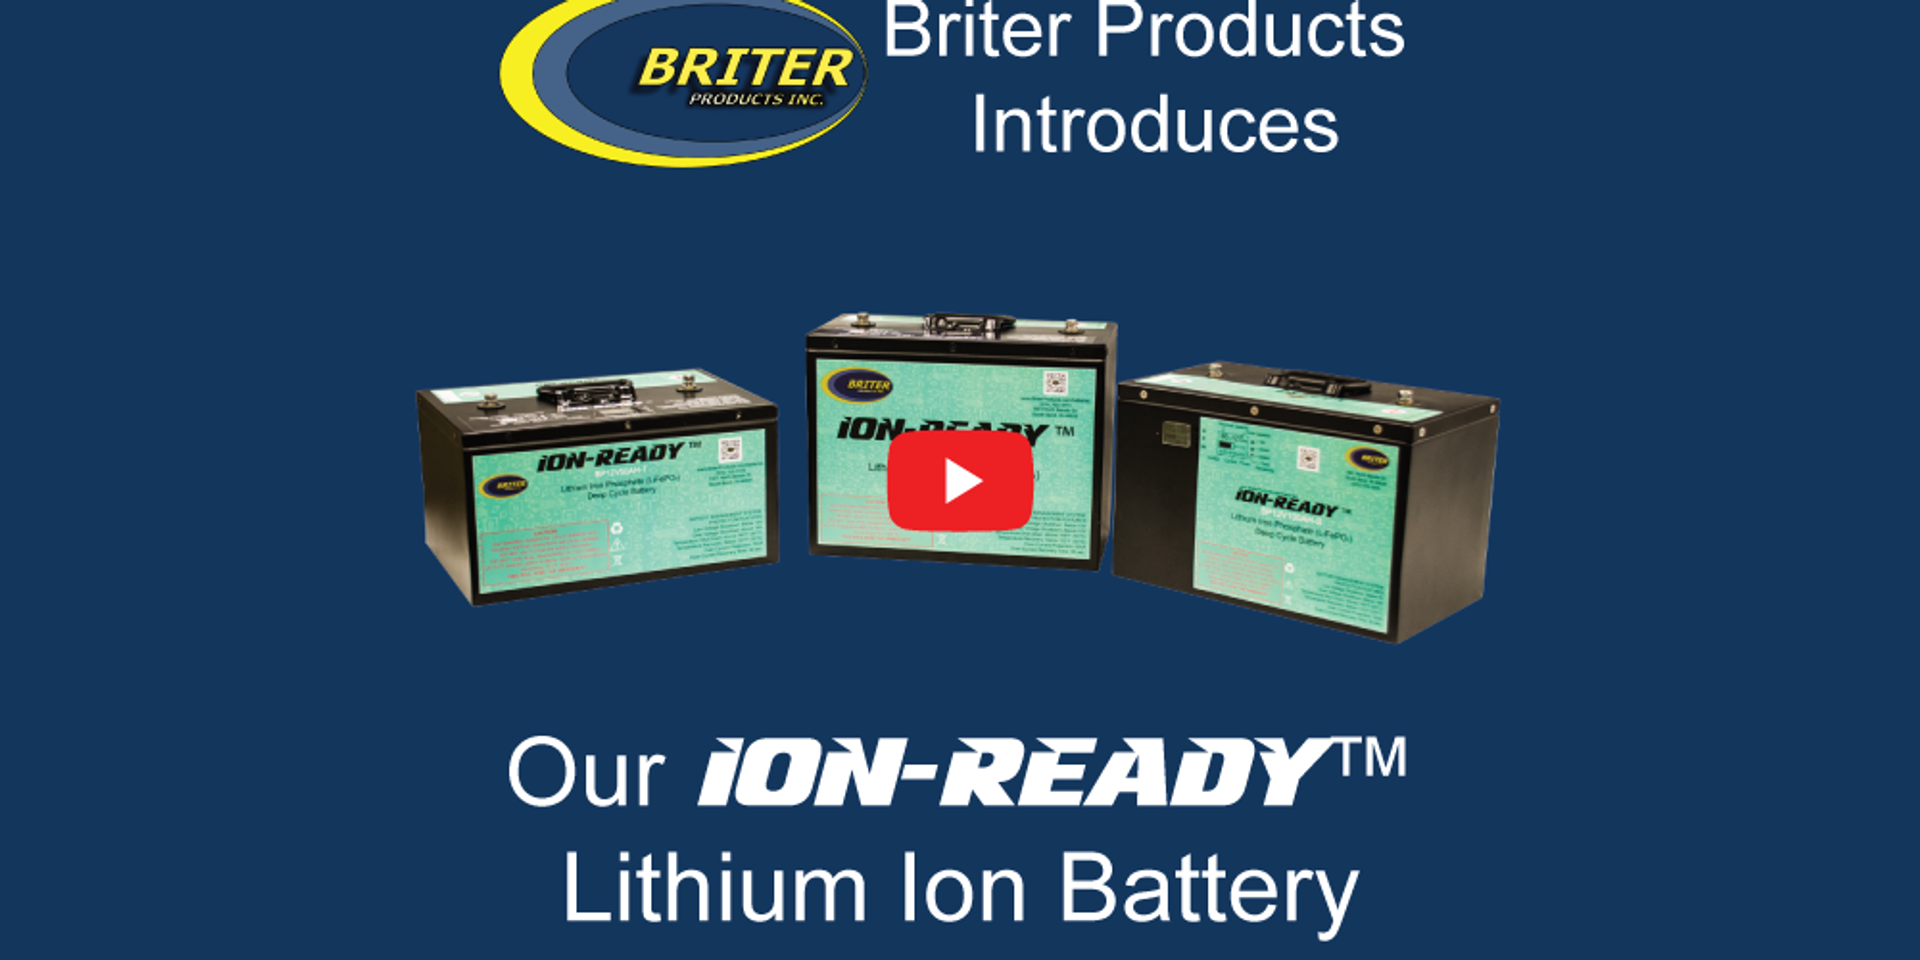 Video: Briter Products Introduces Our Ion-Ready Battery